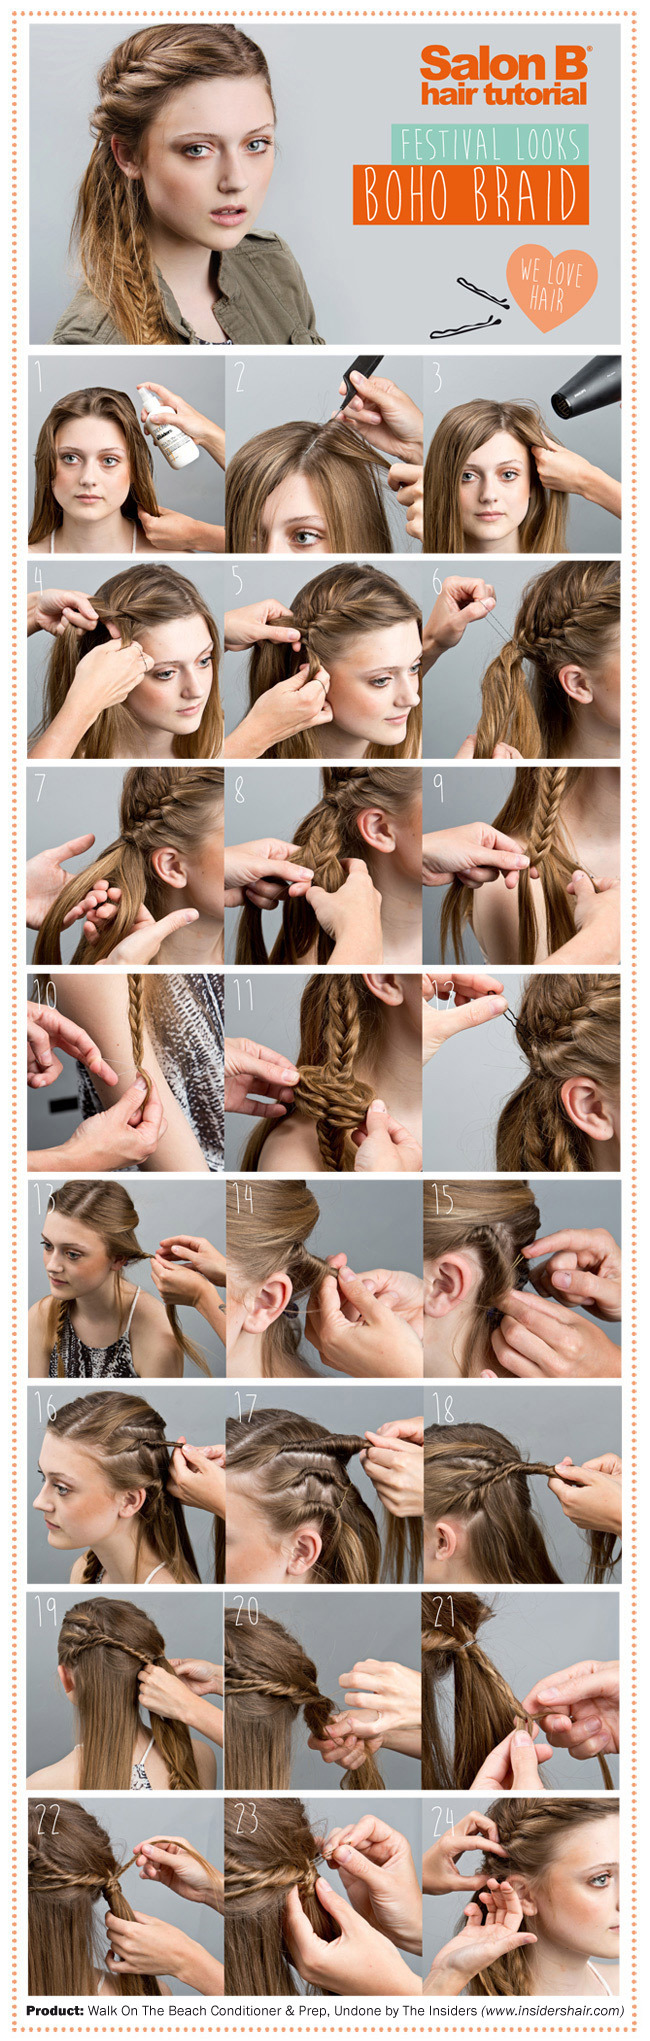 festival-hair-tutorial_boho-braid_salon-b